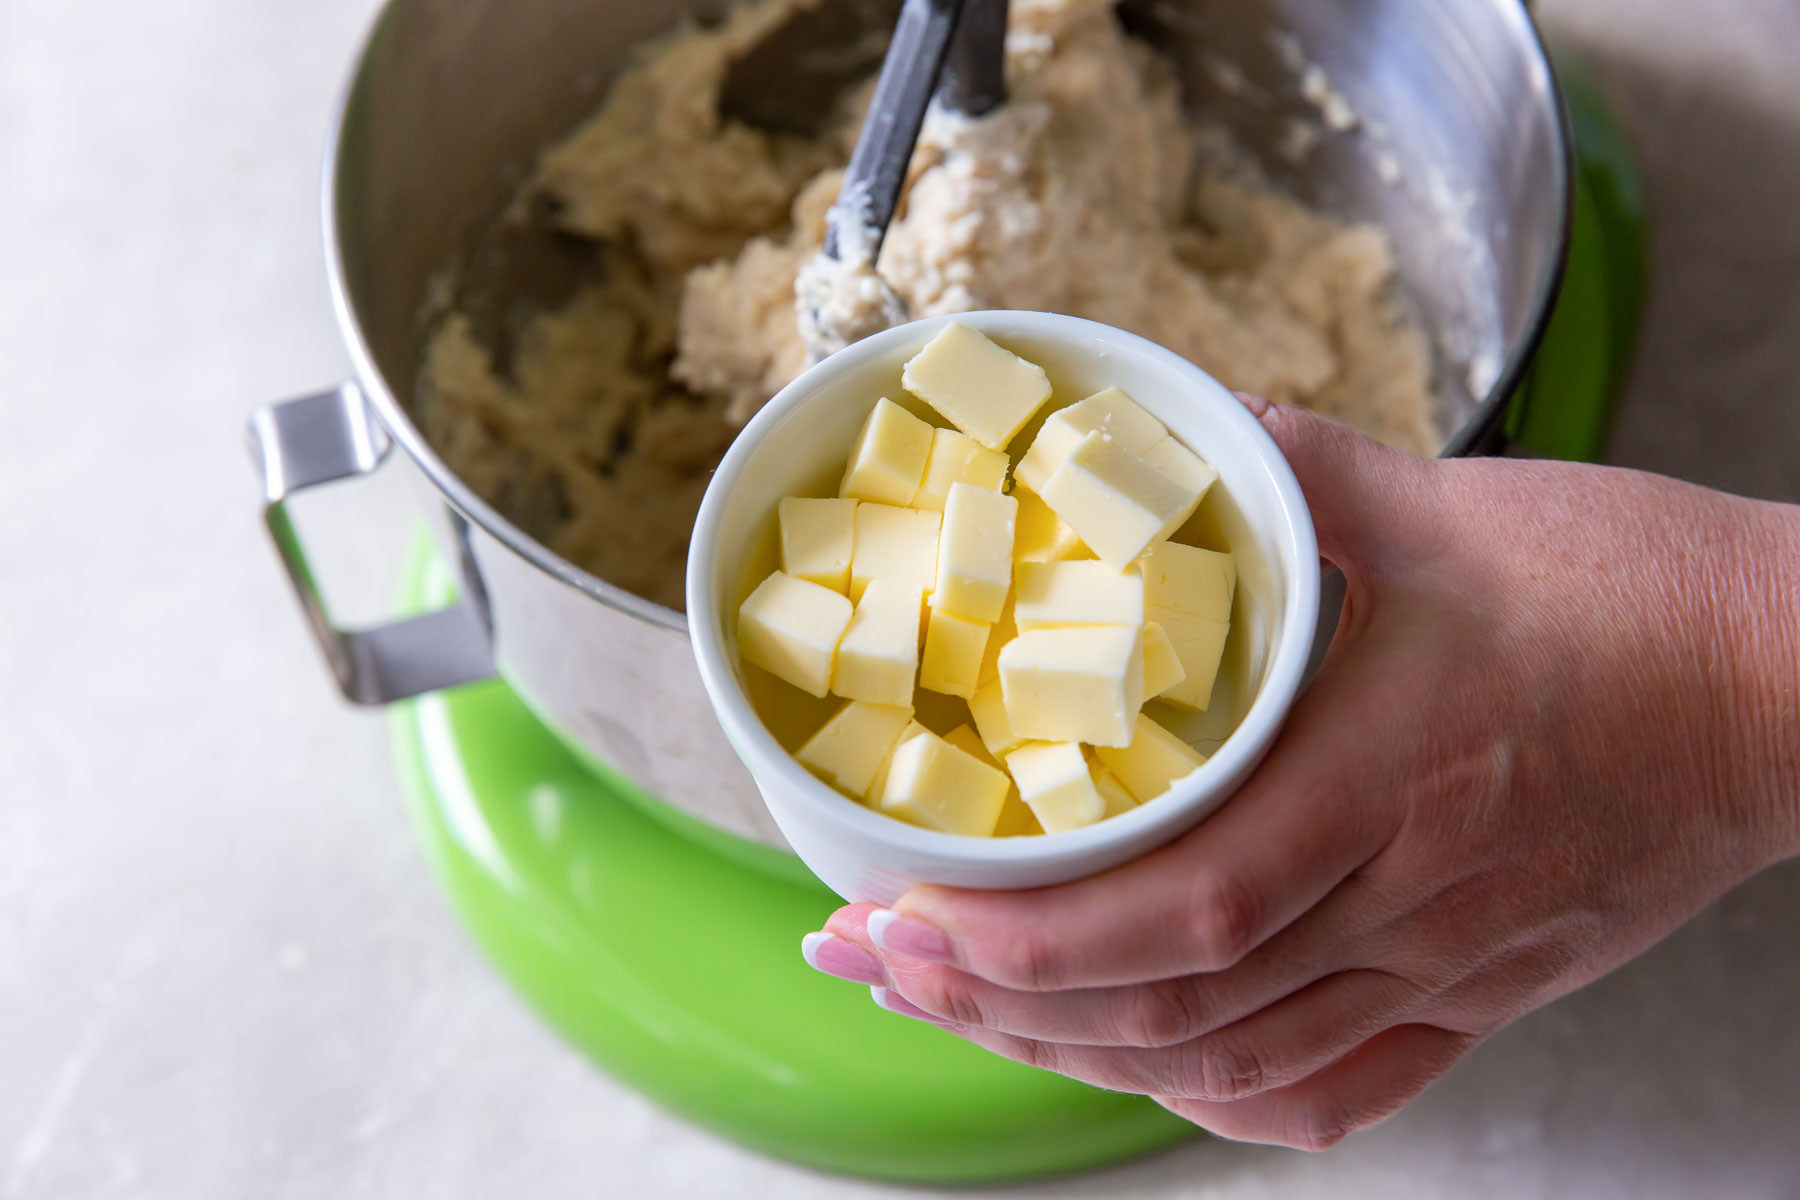 holding small dish of butter cubes in front of mixer with dinner roll dough